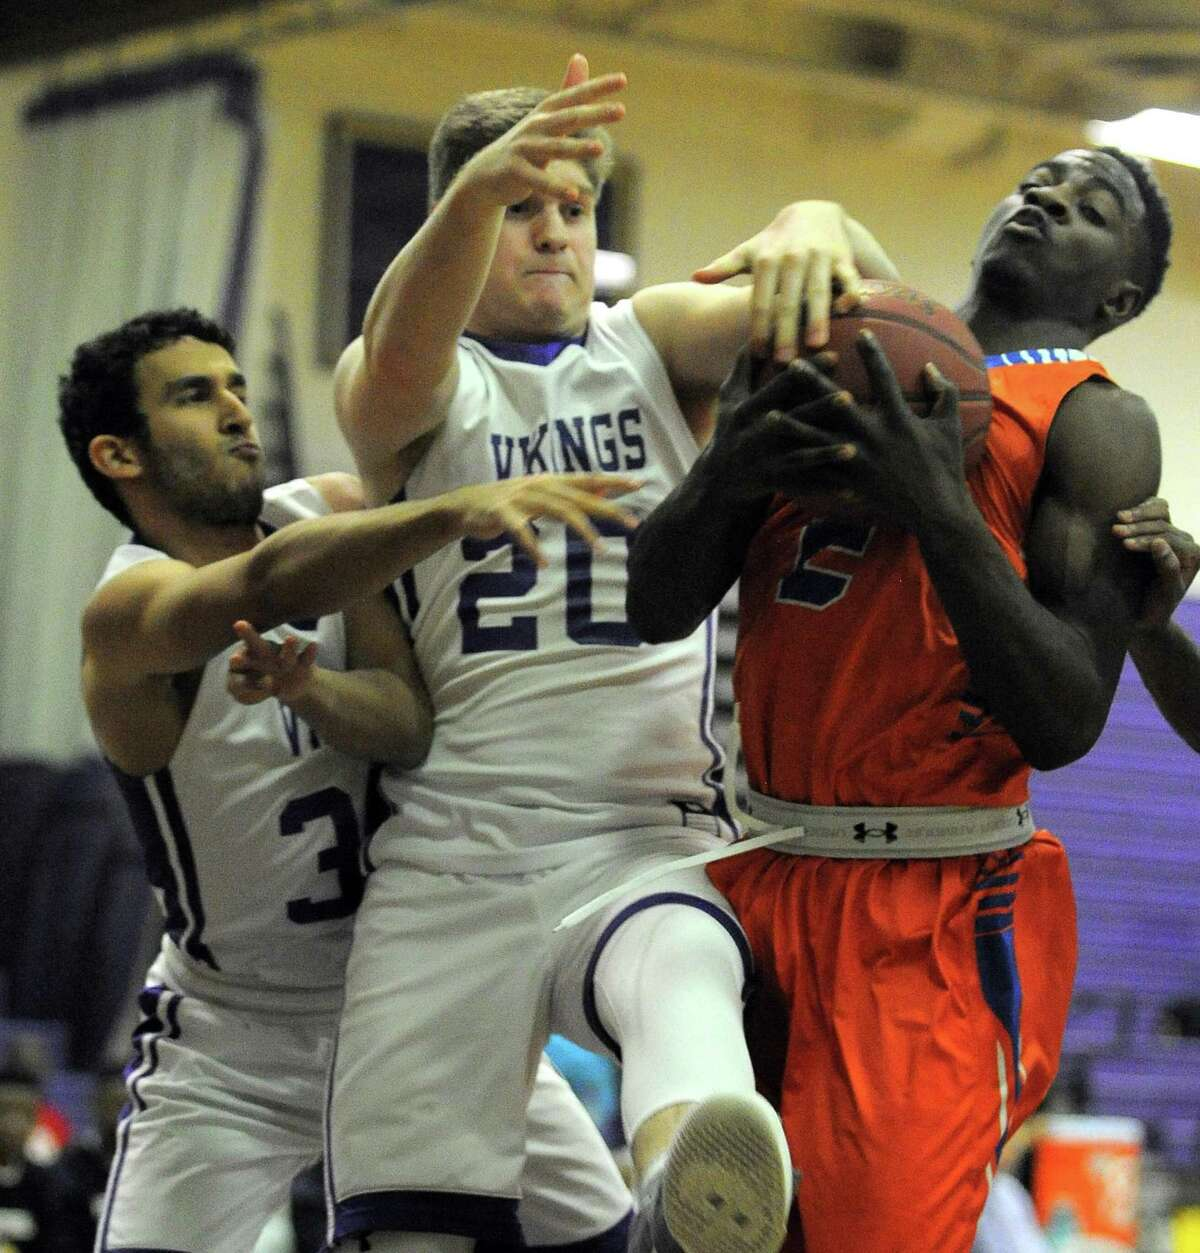 Westhill Jared Yaghoubian and Sam Lombino battle with Danbury Massiah Crandell for a rebound in a FCIAC boys basketball game at the Westhill High School's J. Walter Kennedy Athletic Complex in Stamford on Jan. 13, 2017.